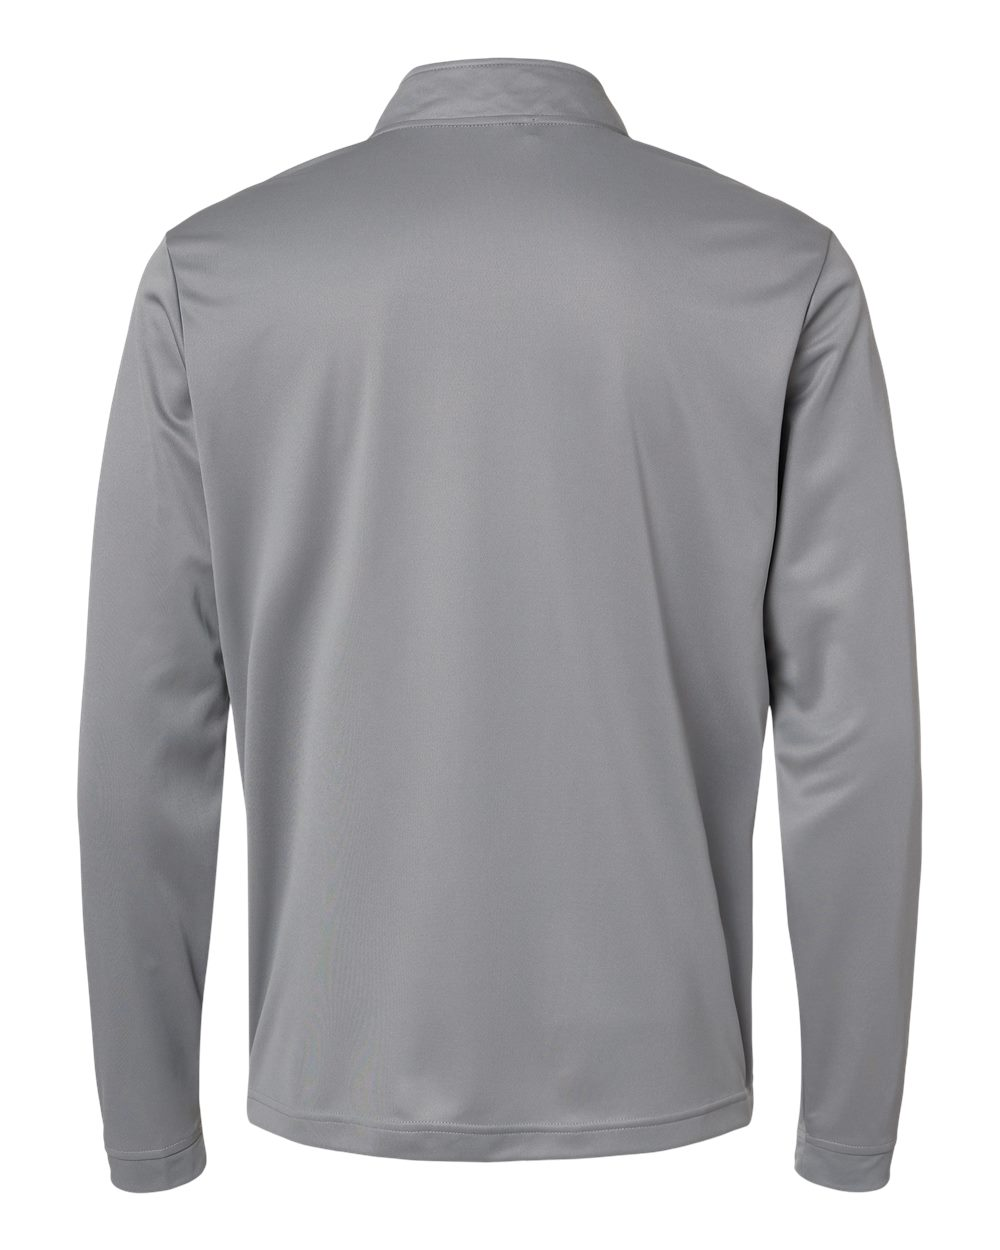 Adidas-Mens-Lightweight-Quarter-Zip-Pullover-Shirt-polyester-A401-up-to-4XL thumbnail 19